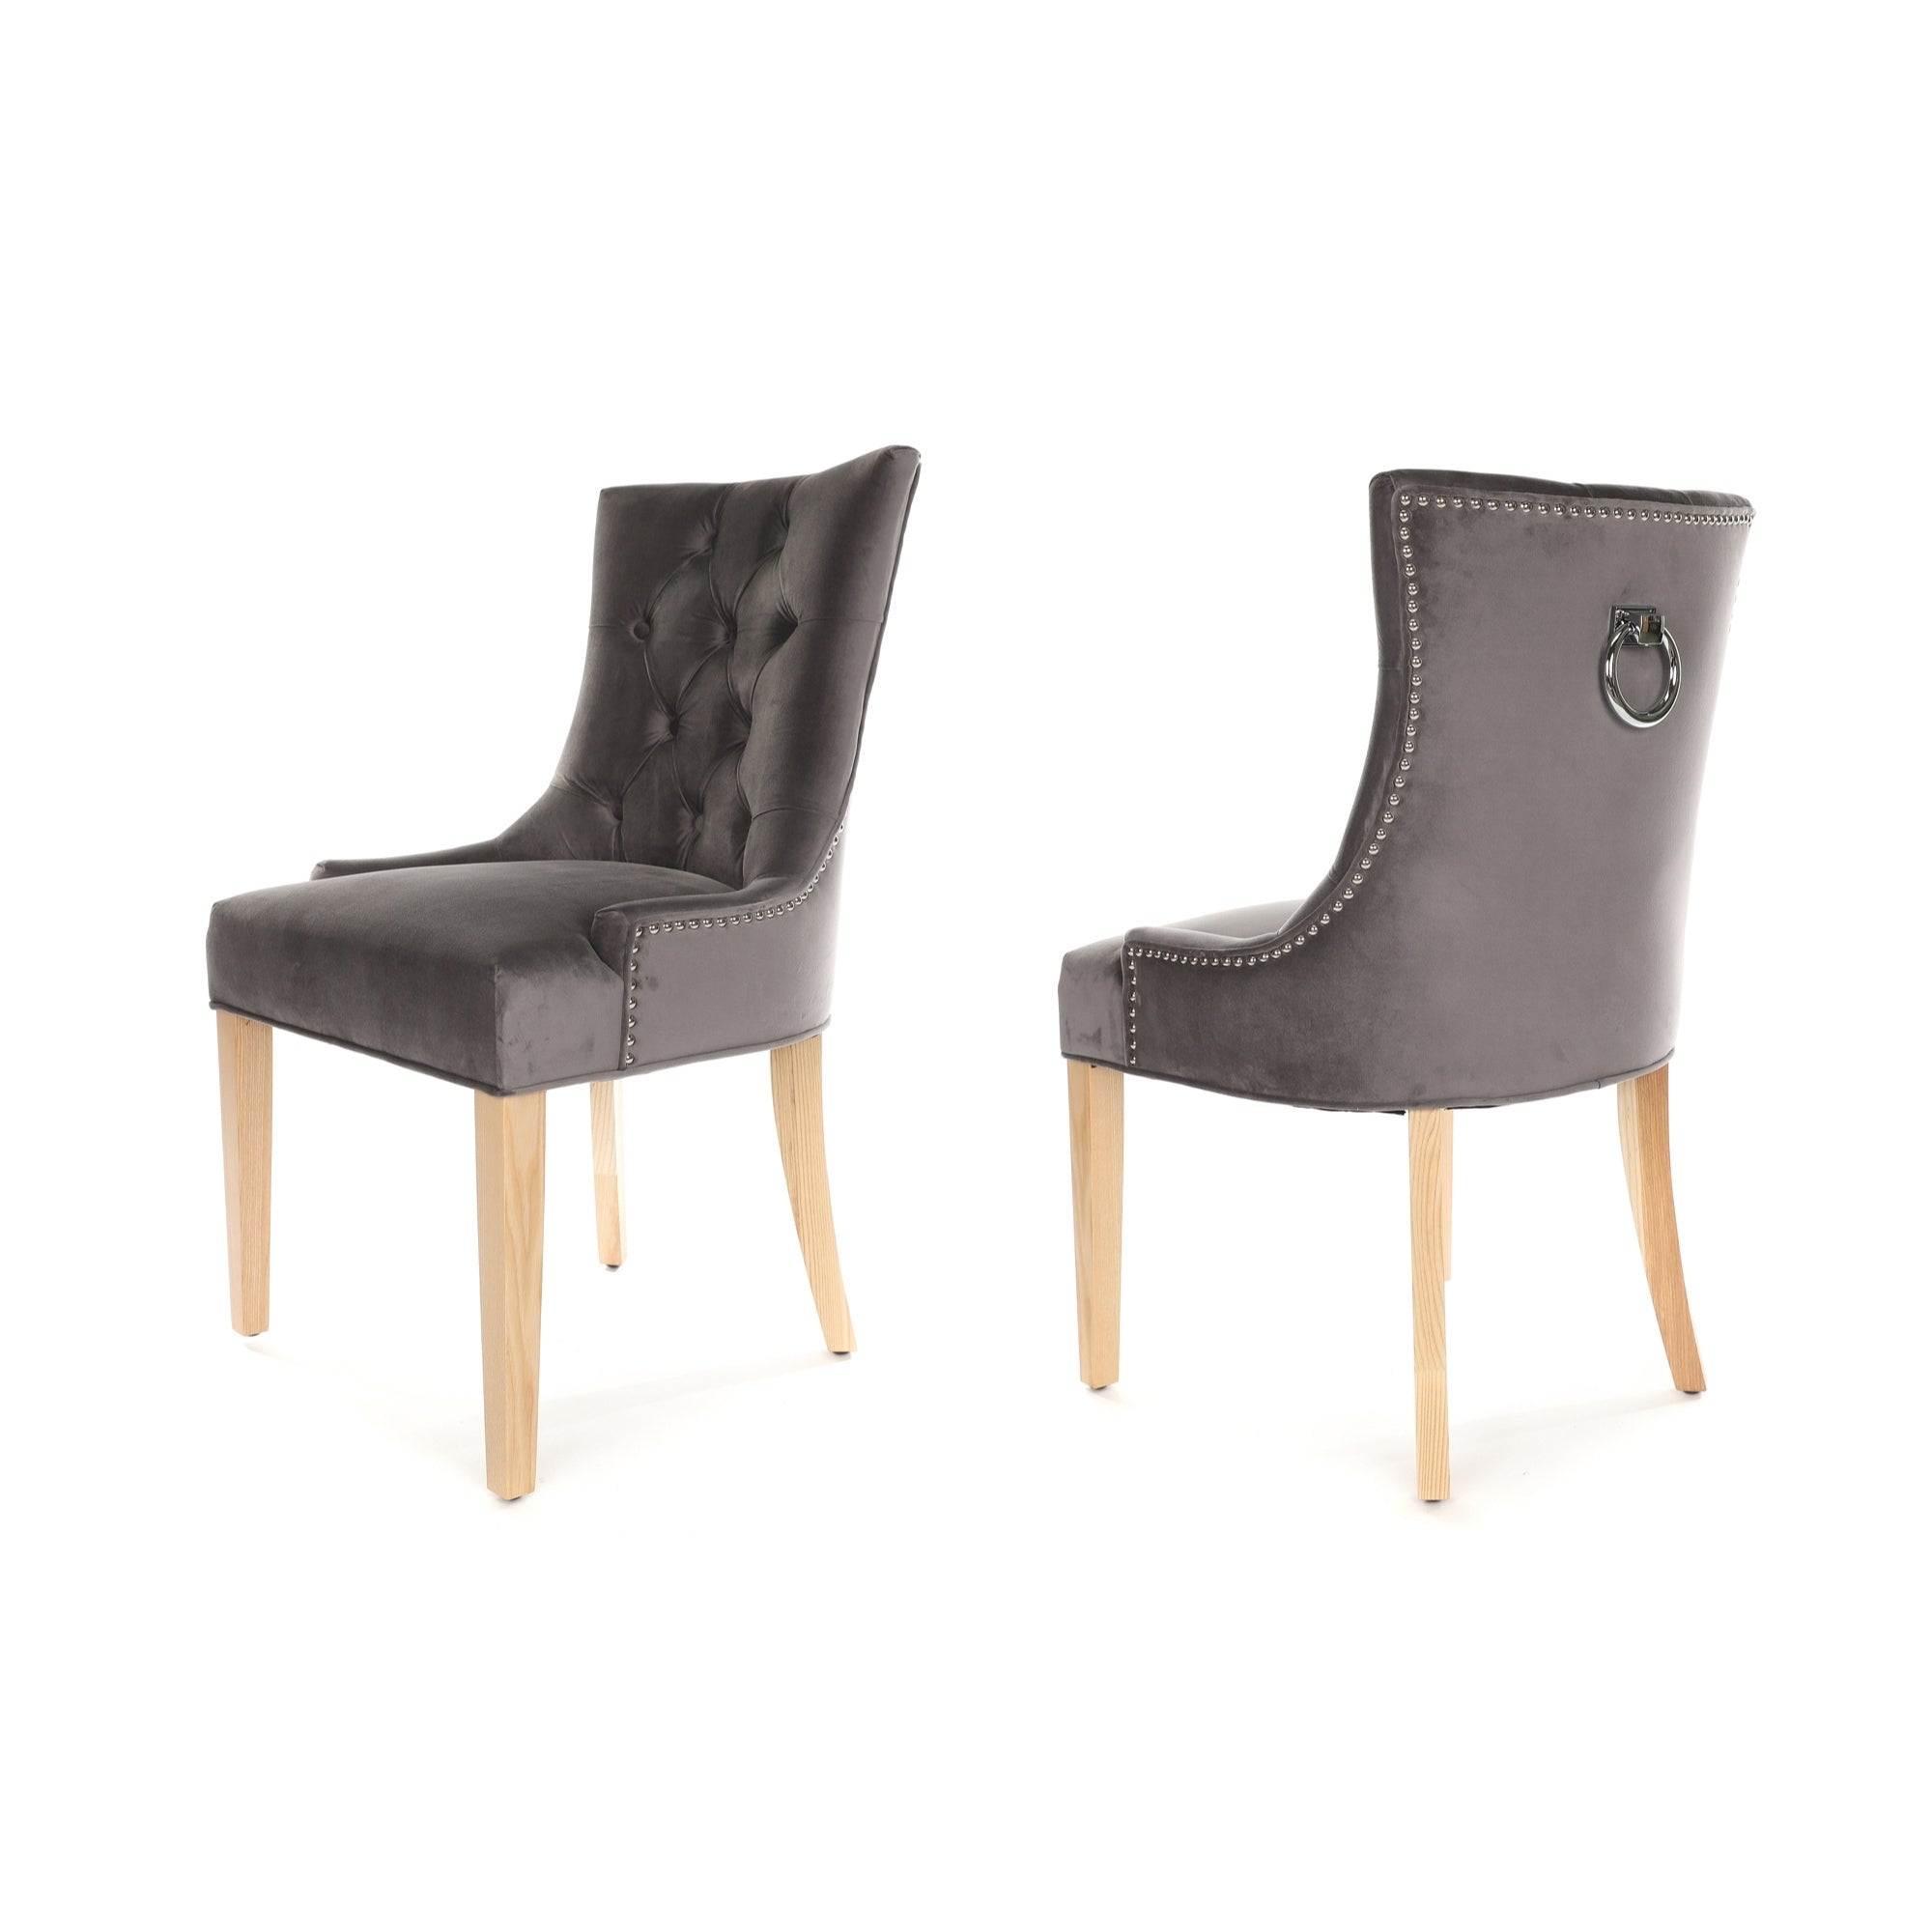 Porter Dining Chair, Dark grey velvet, Natural wood legs and a metal ring knocker